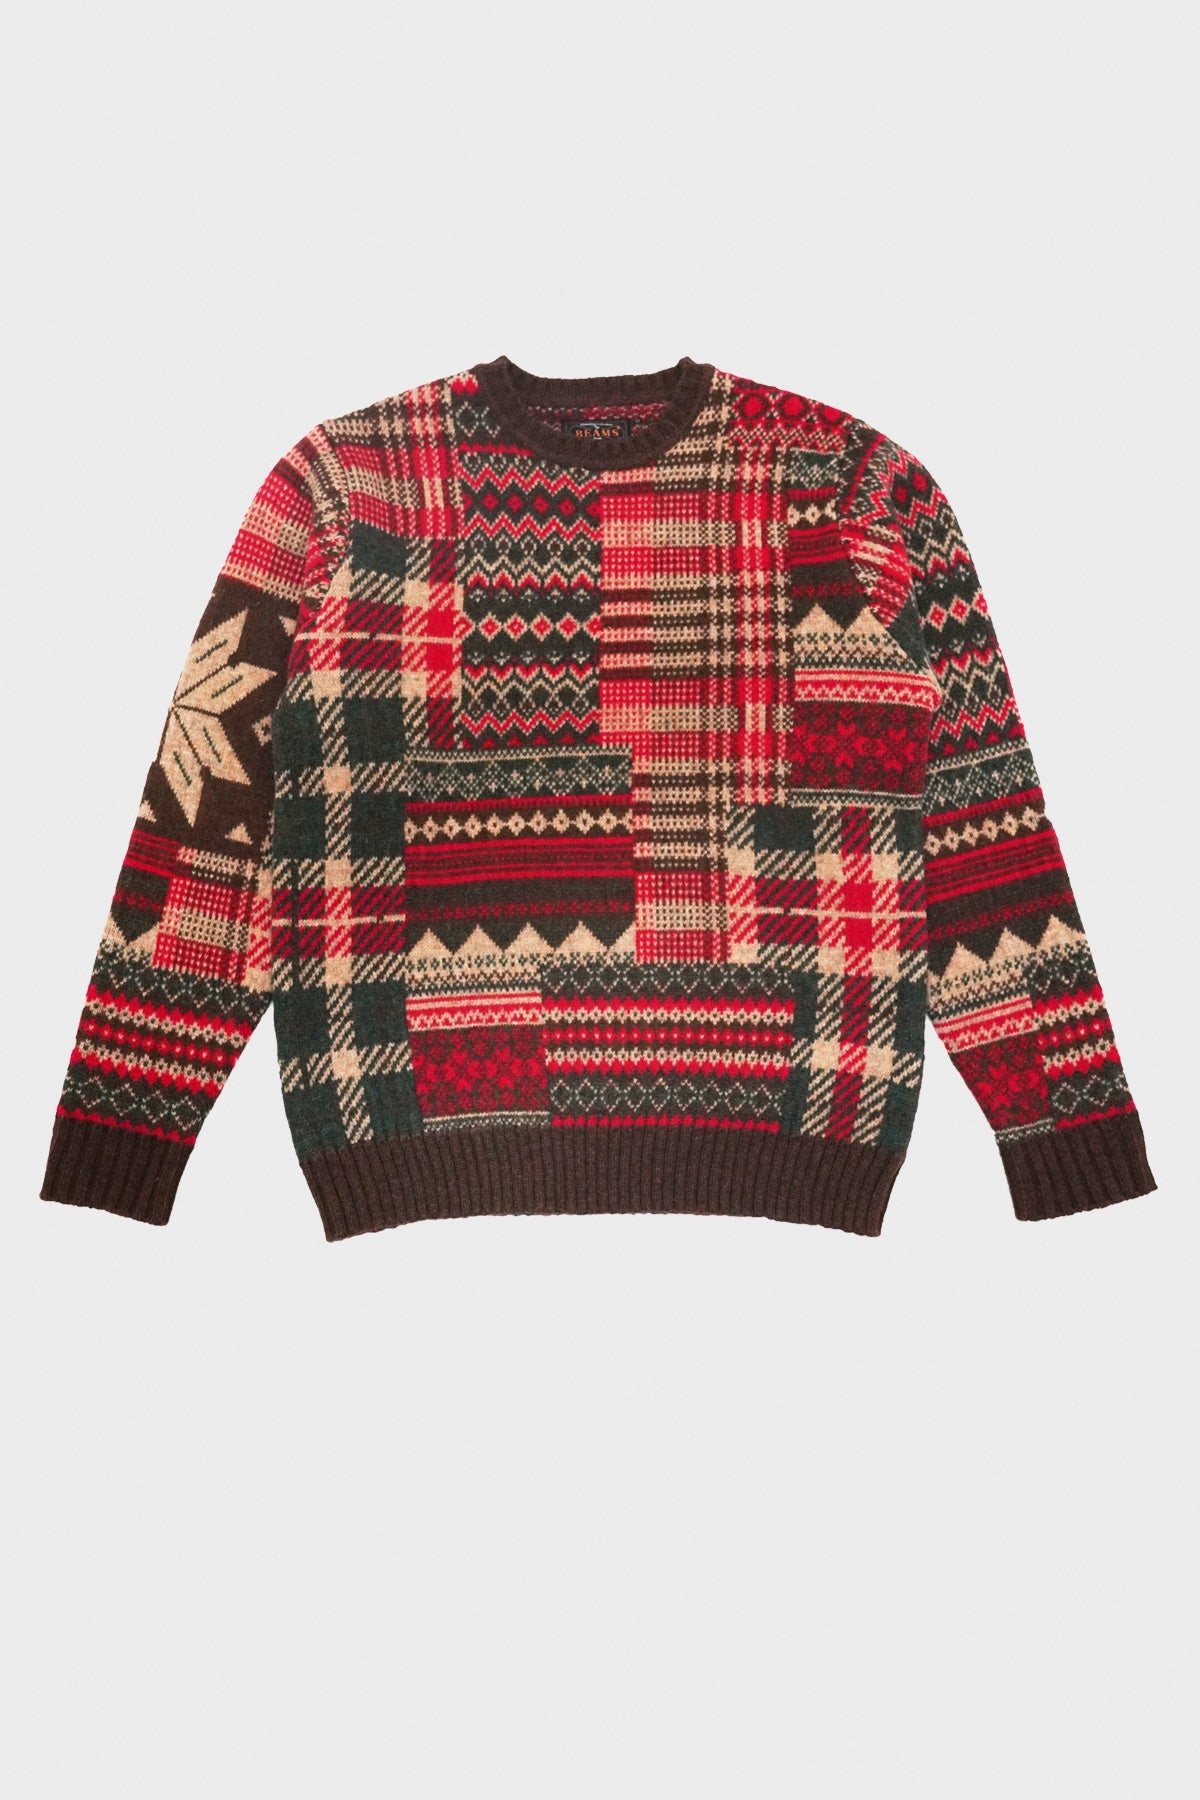 beams plus Patchwork Jacquard Sweater - Brown/Red